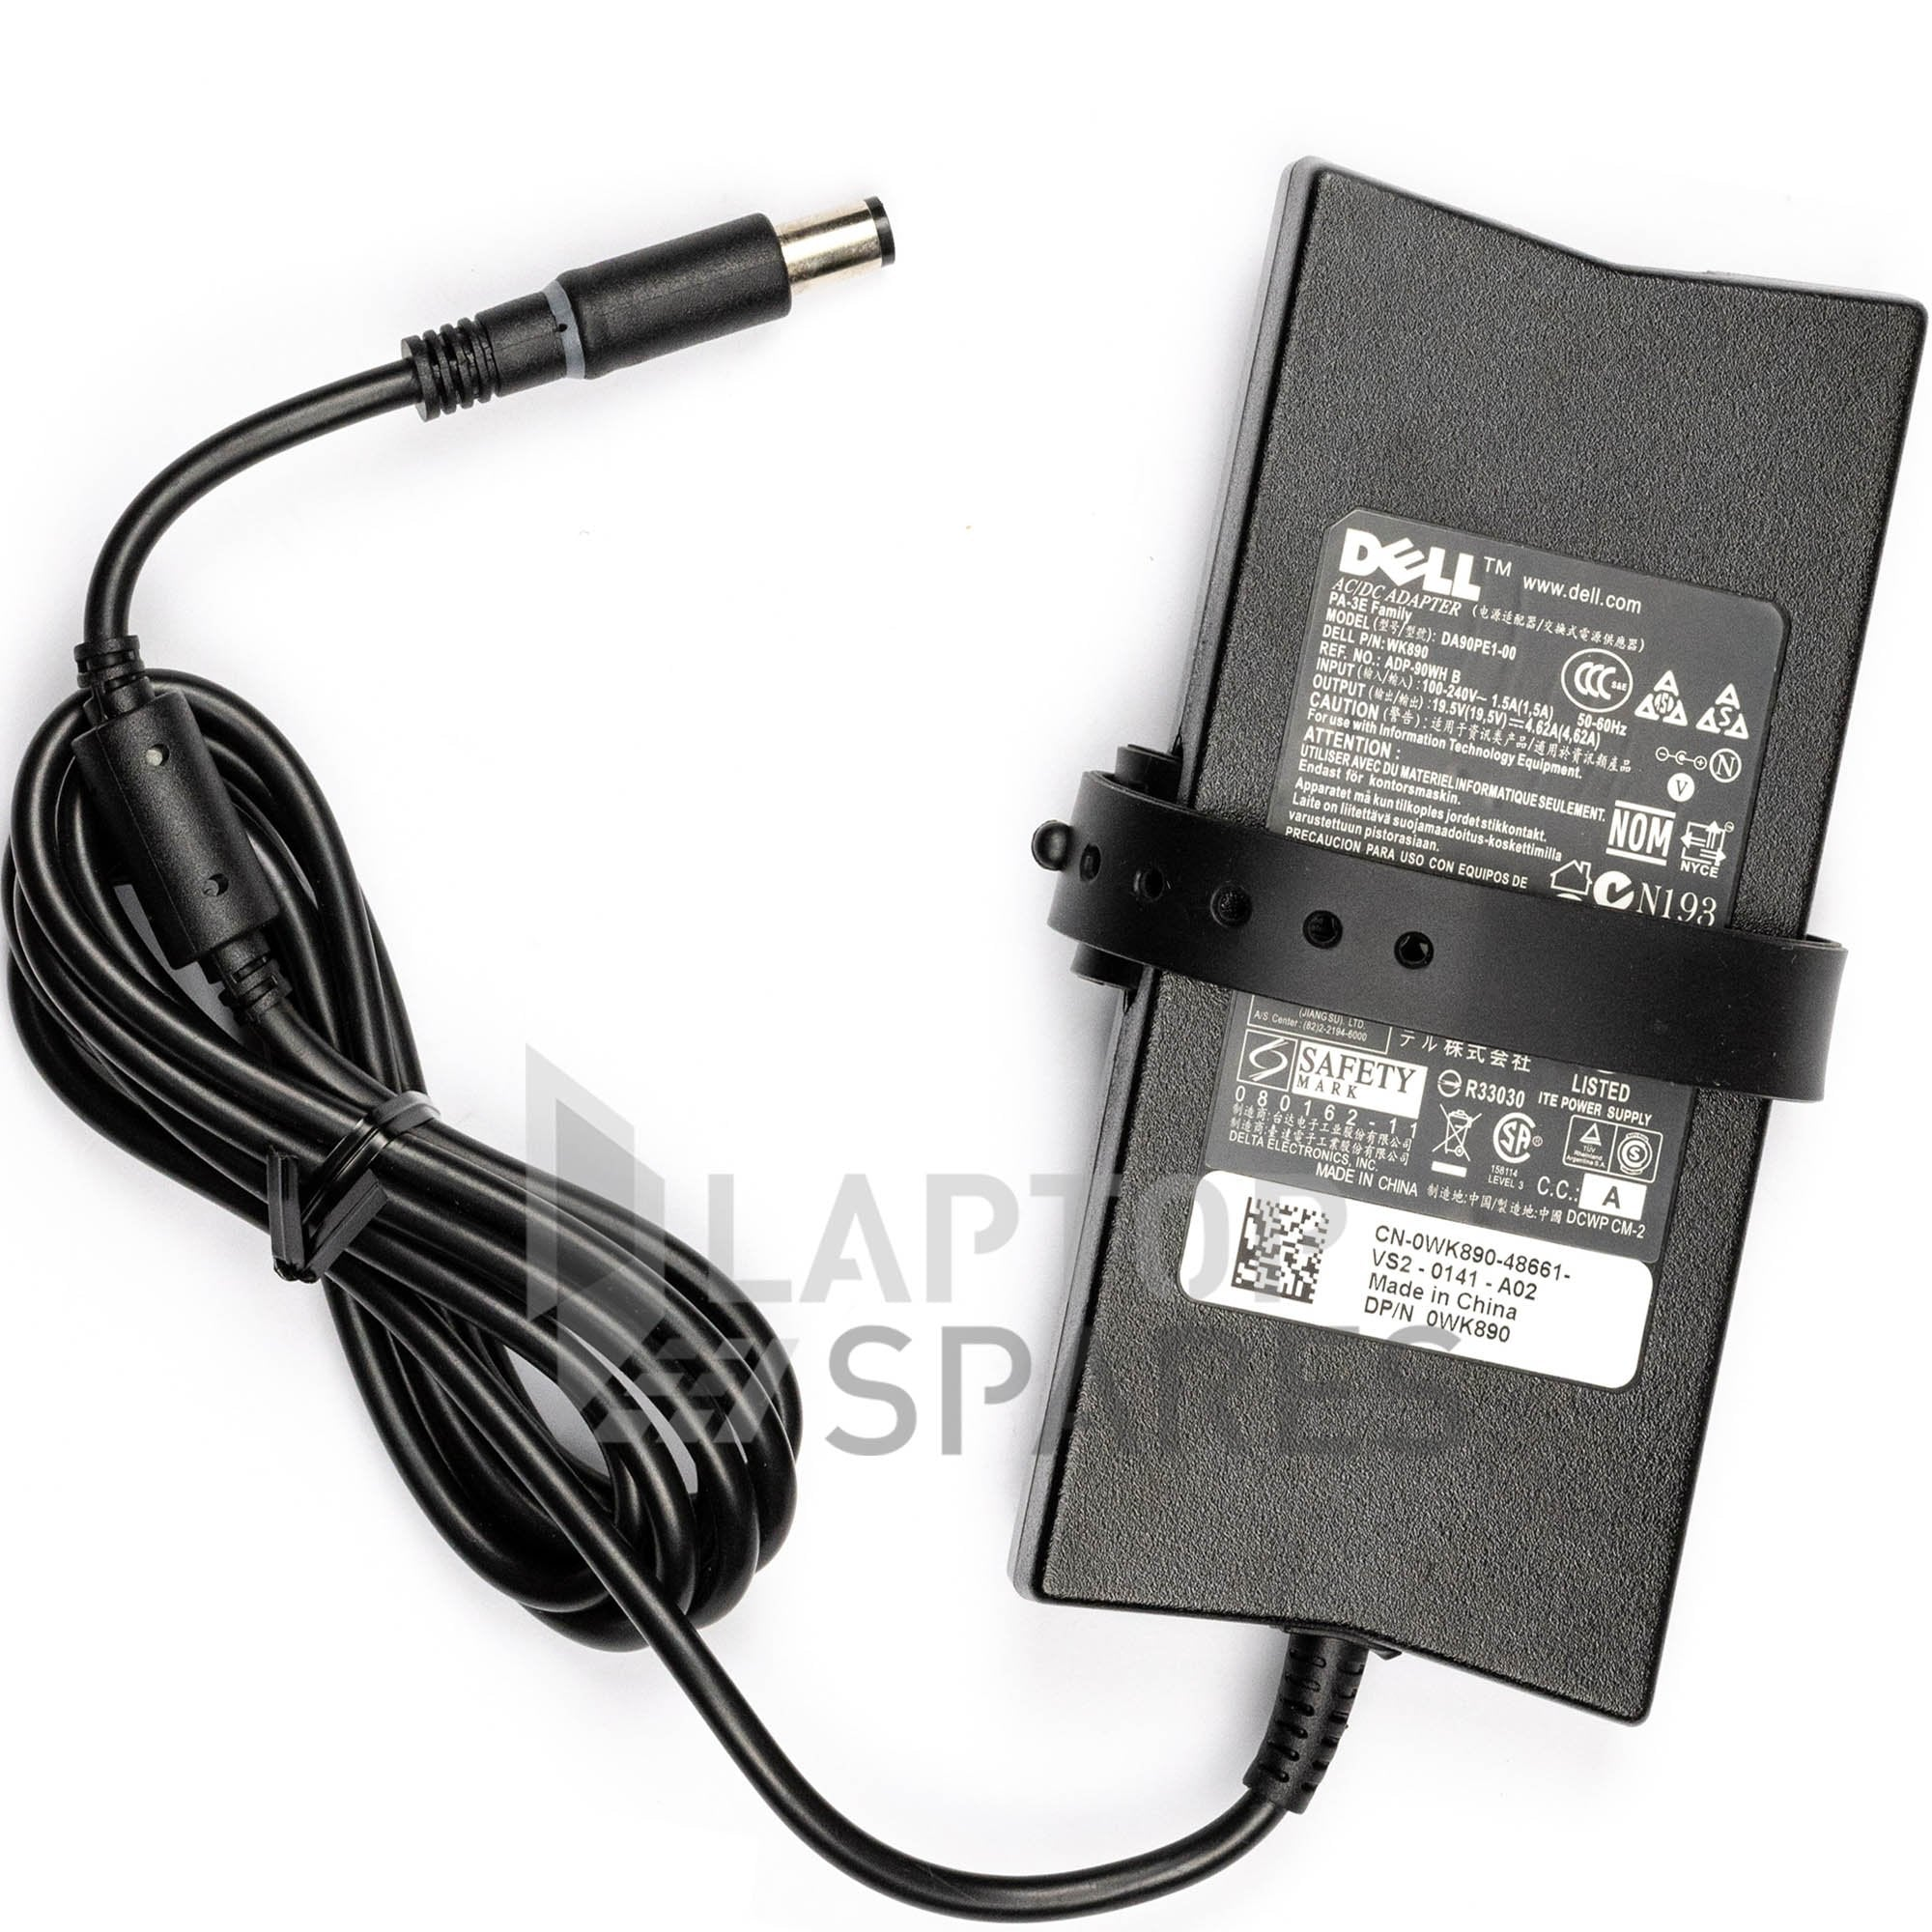 Dell Inspiron M5110 Mini 11Z Laptop Slim AC Adapter Charger